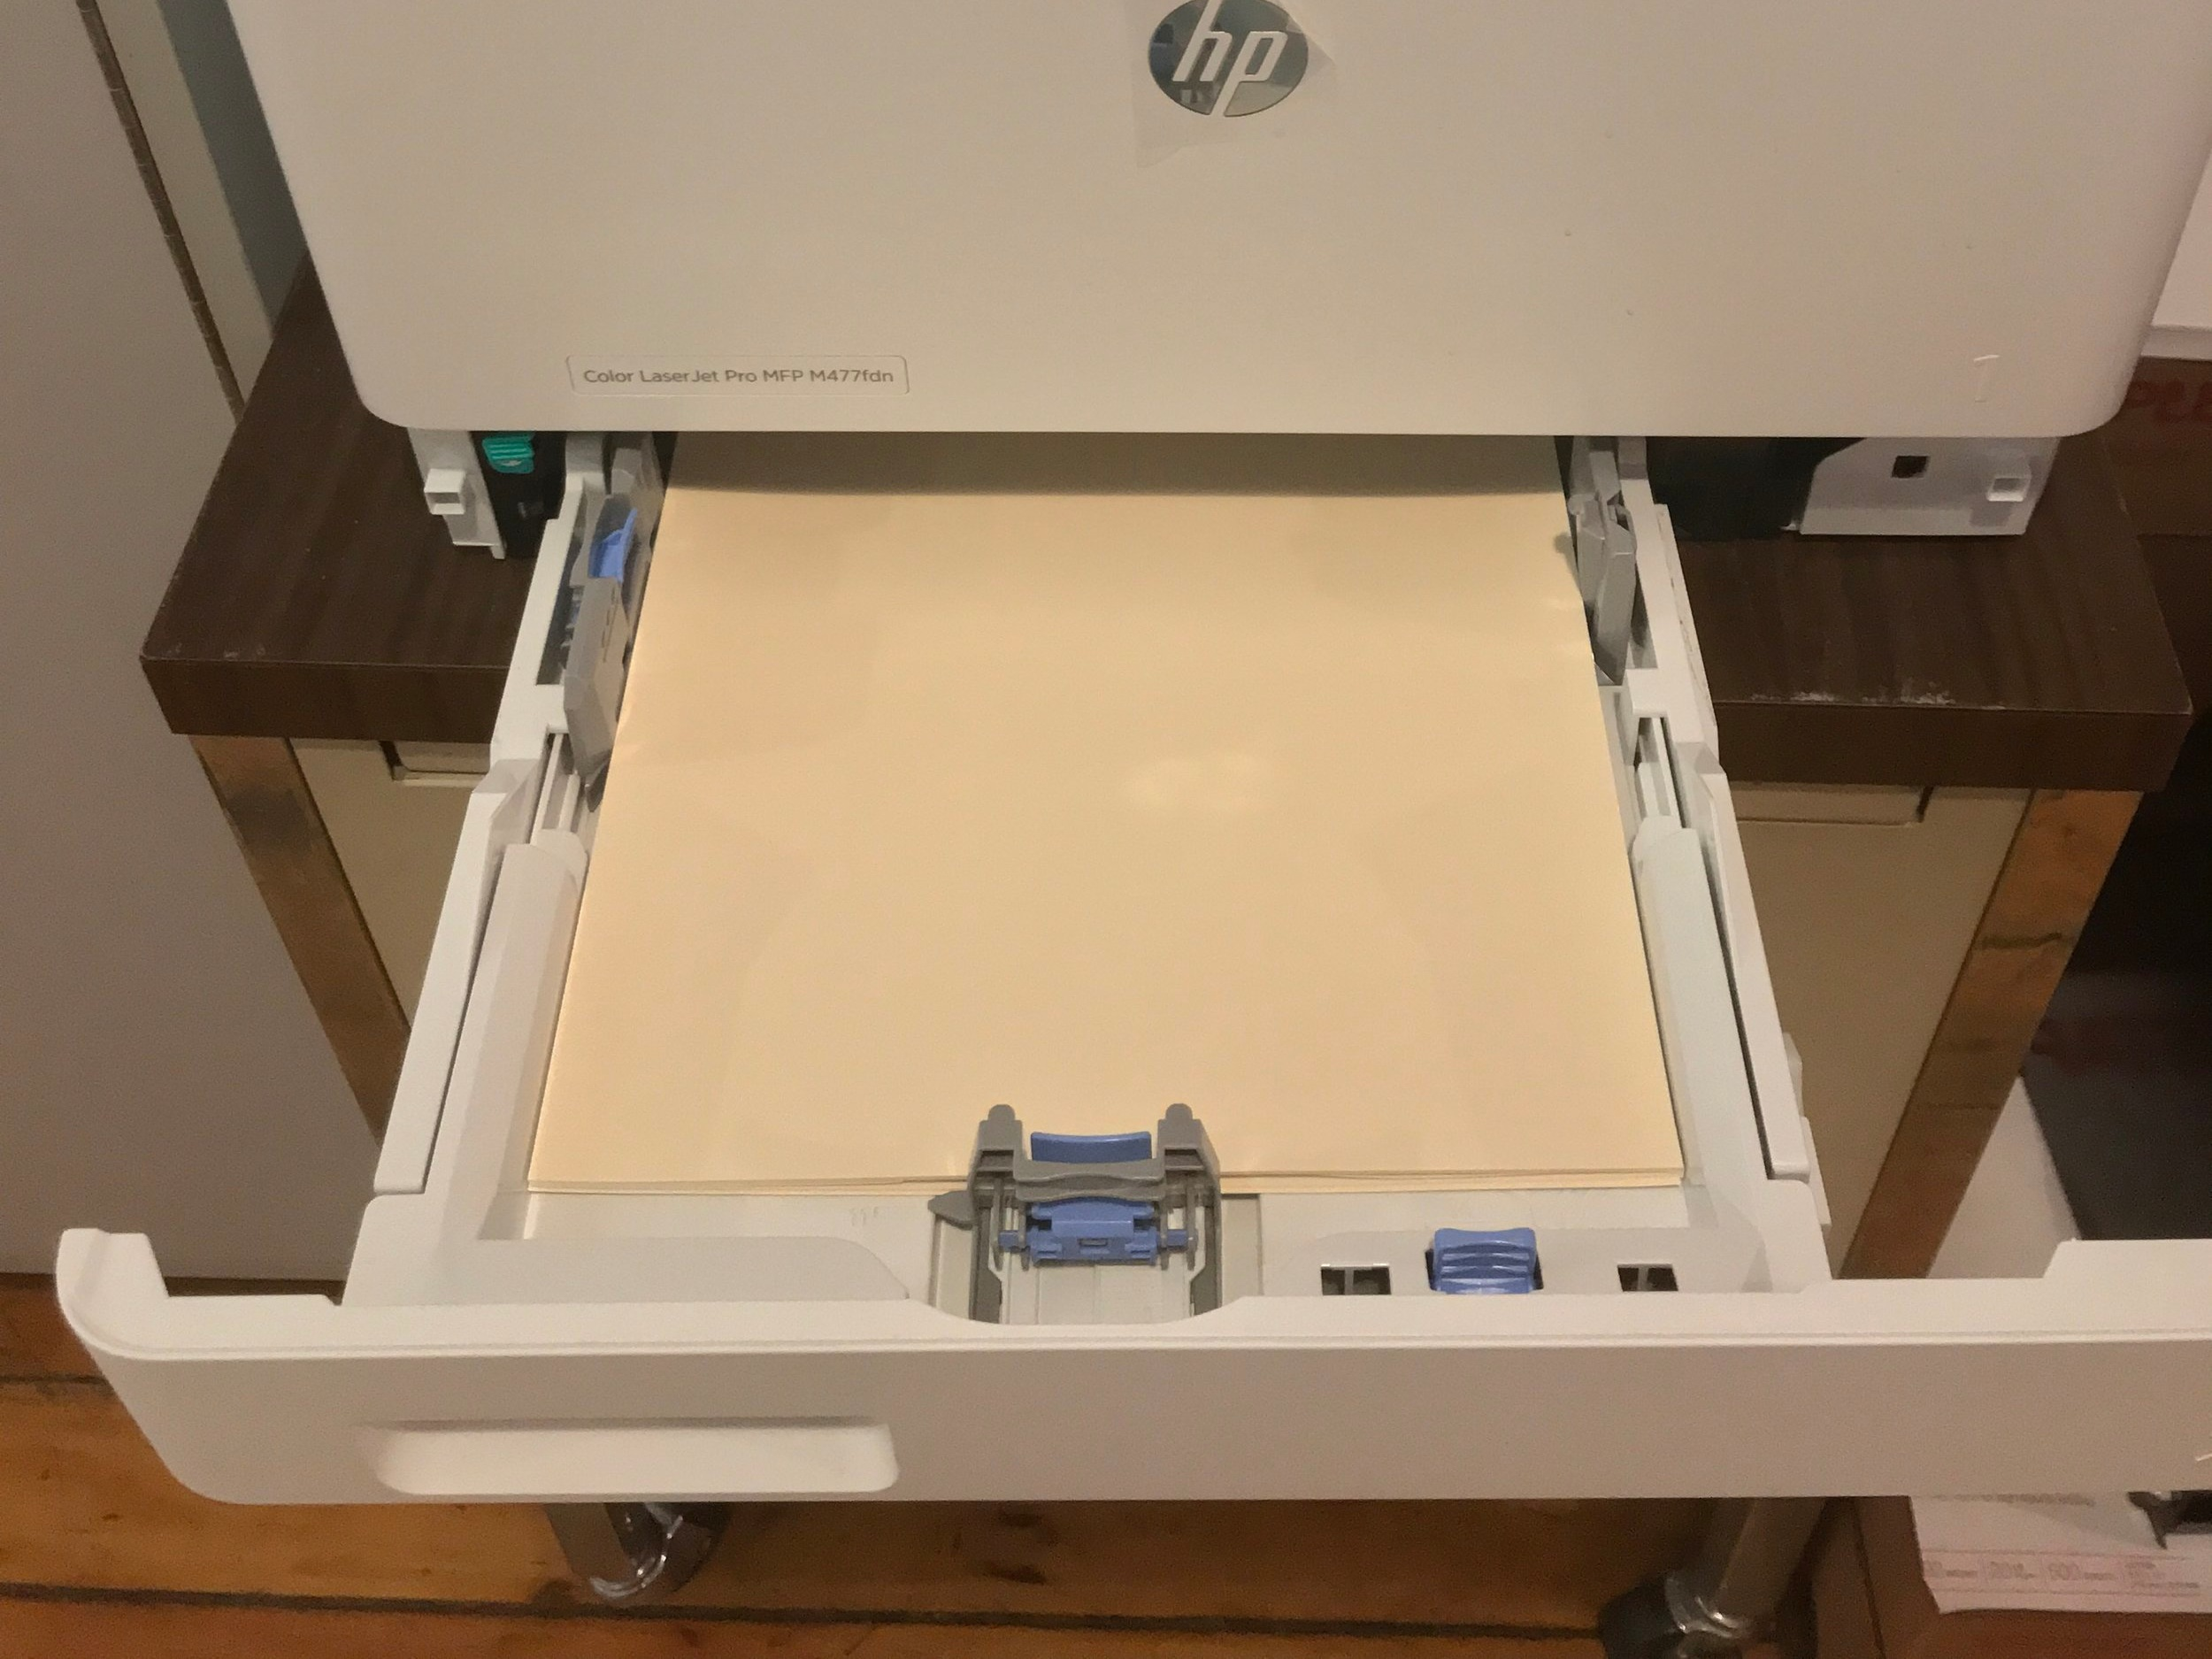 Manual feed tray in a color laser printer ejected and loaded with Swell Touch Paper. Paper is loaded so that it prints on the sticky, coated side of the paper.